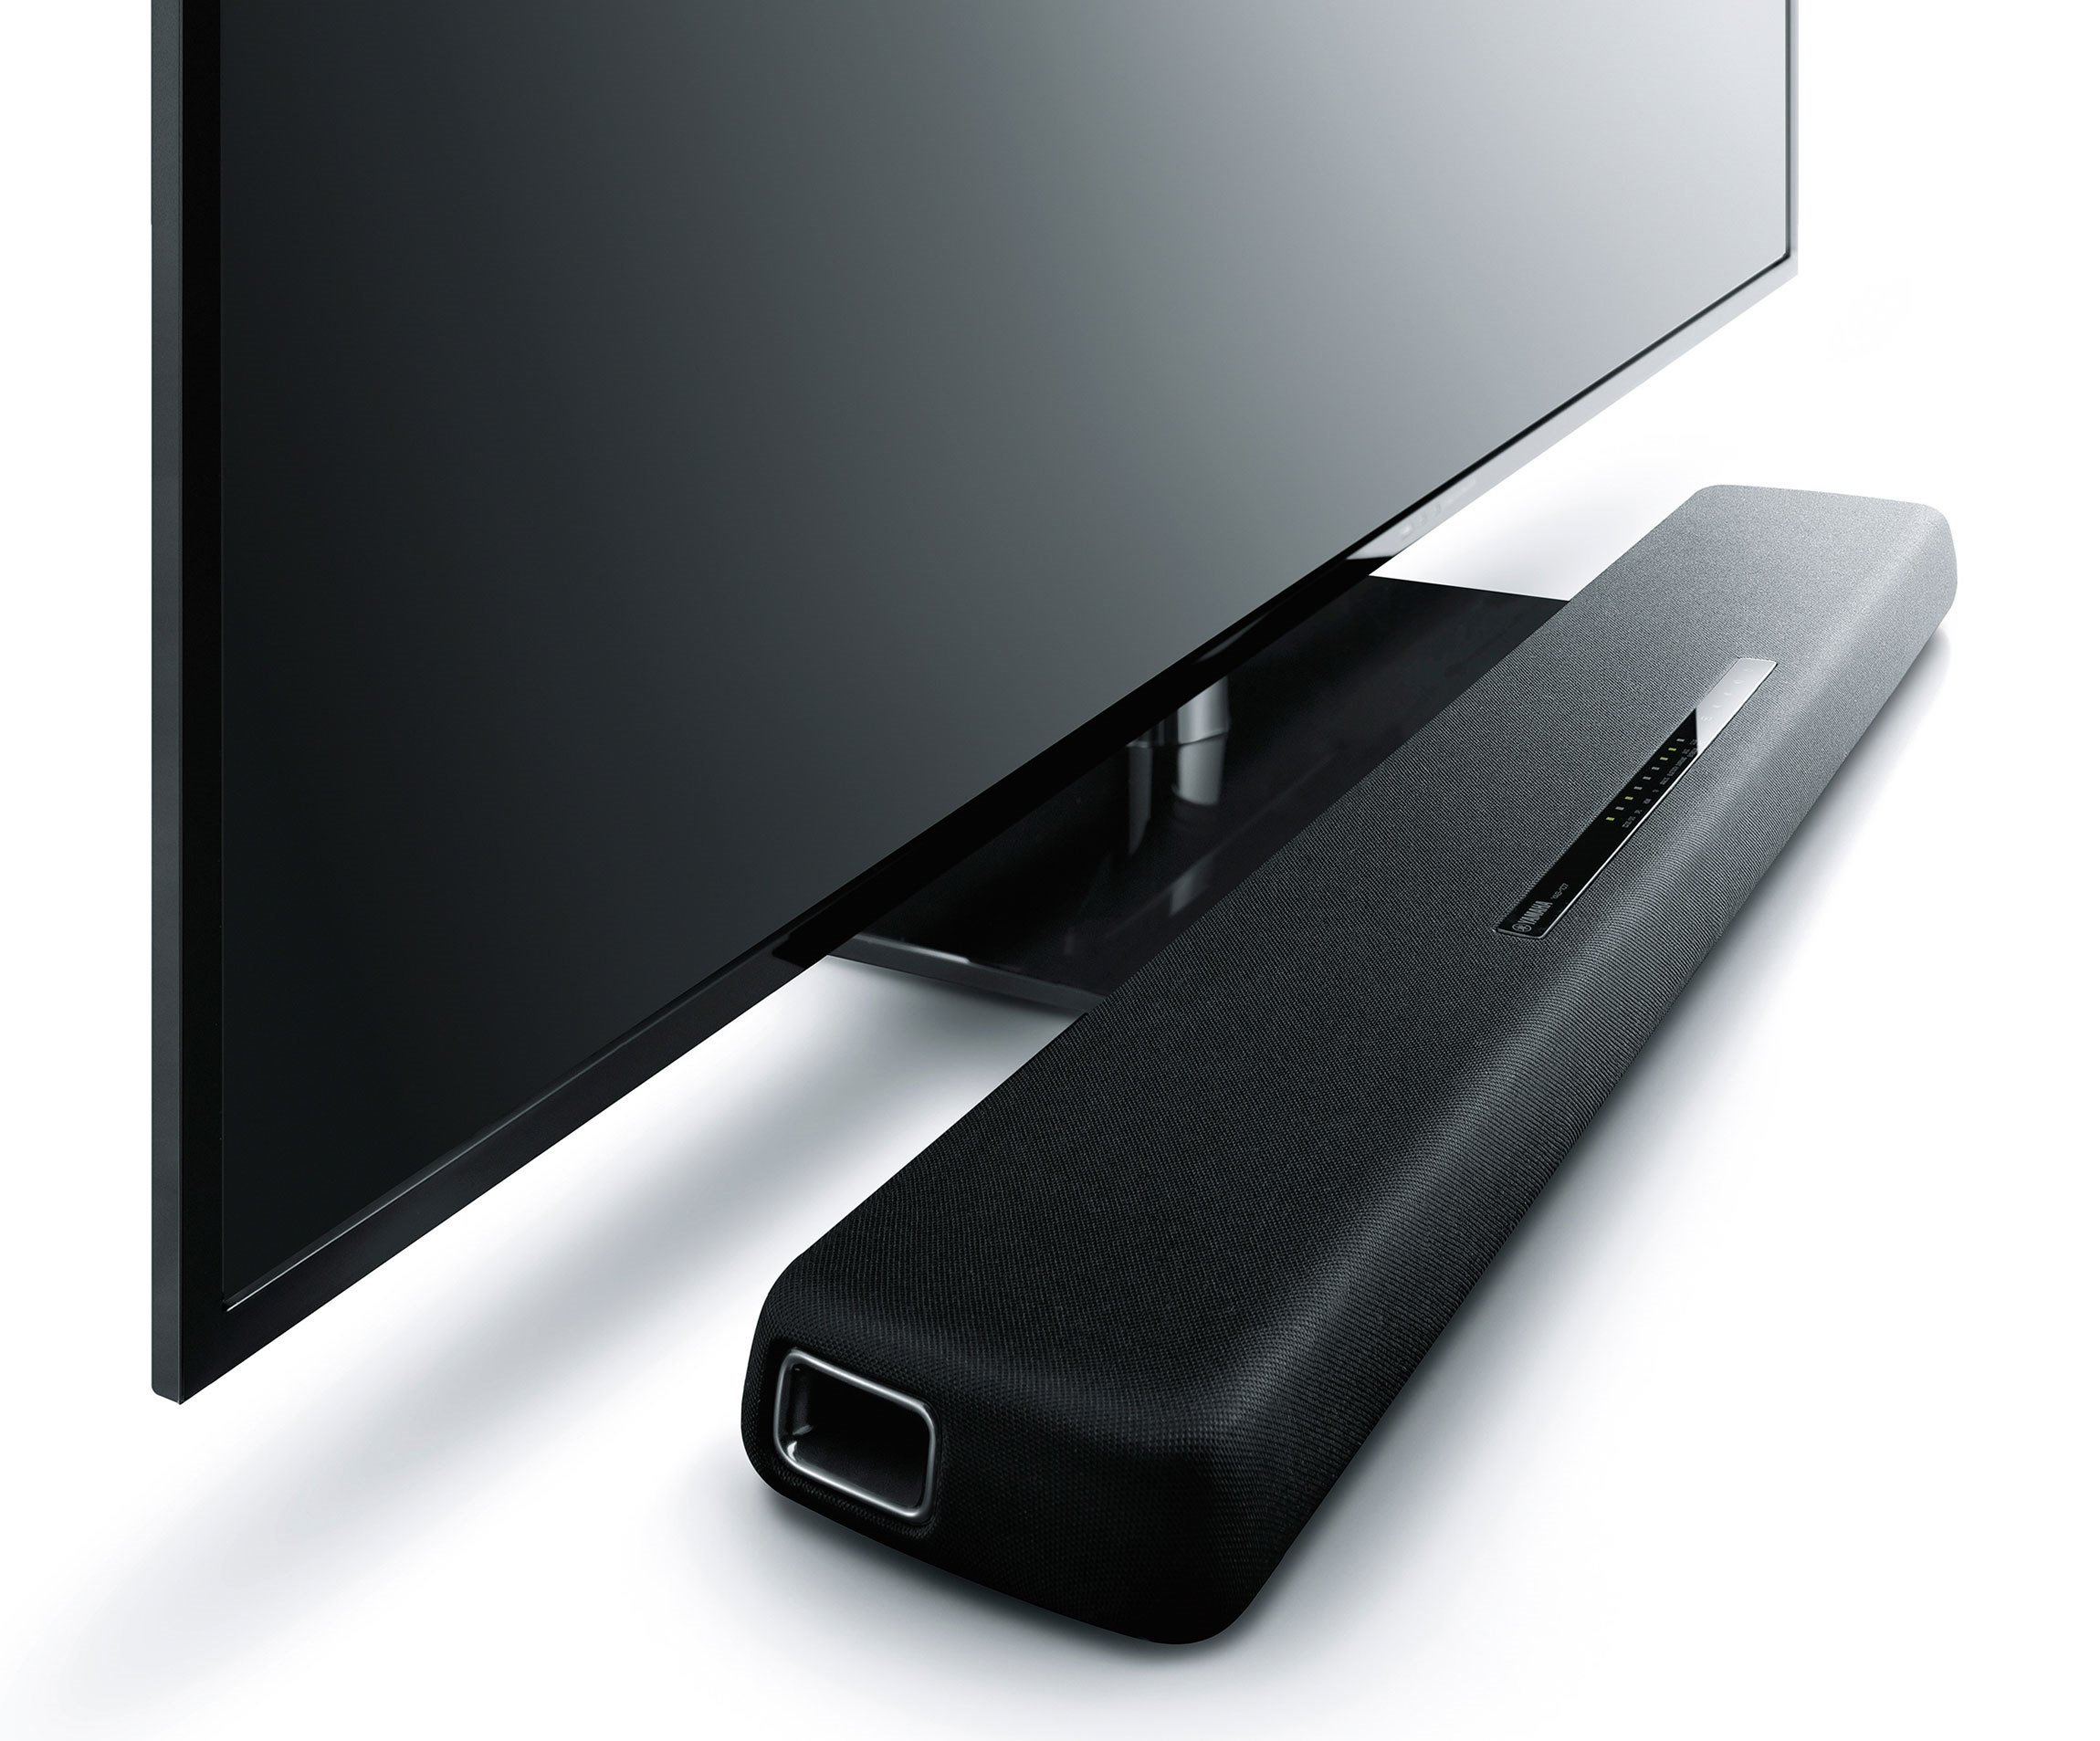 YAS-107 - Overview - Sound Bars - Audio & Visual - Products